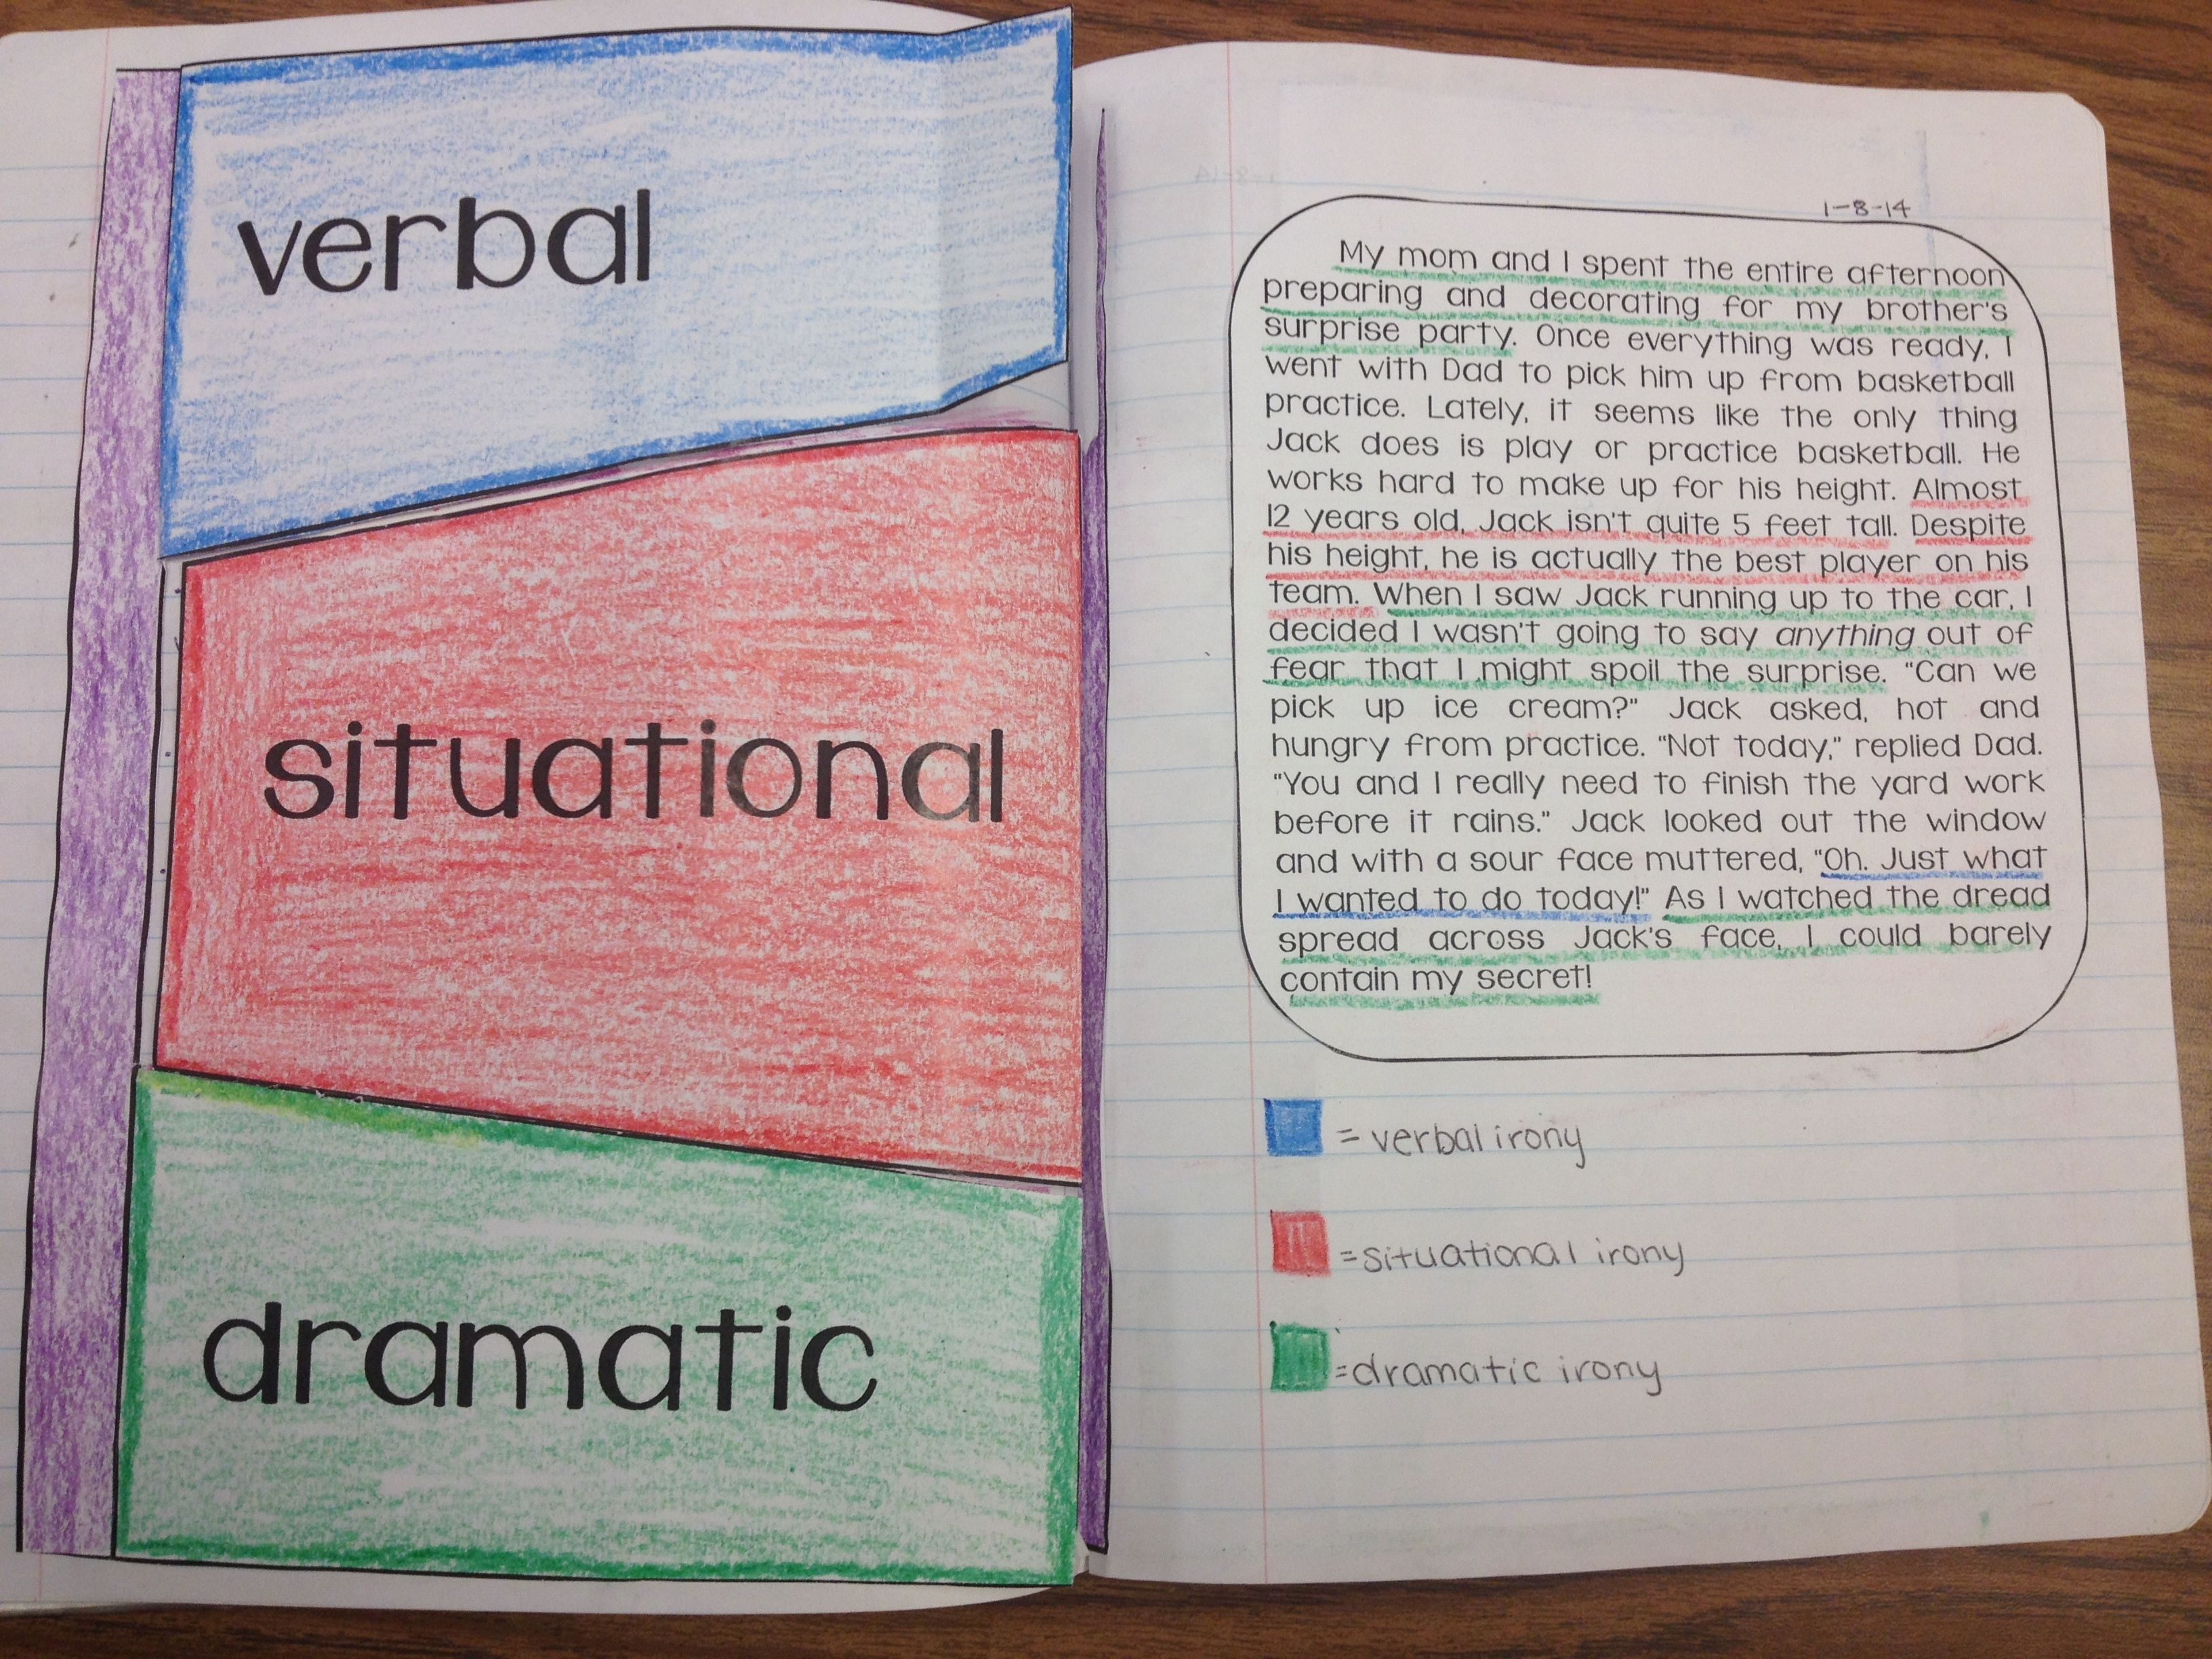 Good Idea For Reinforcement Verbal Irony Situational